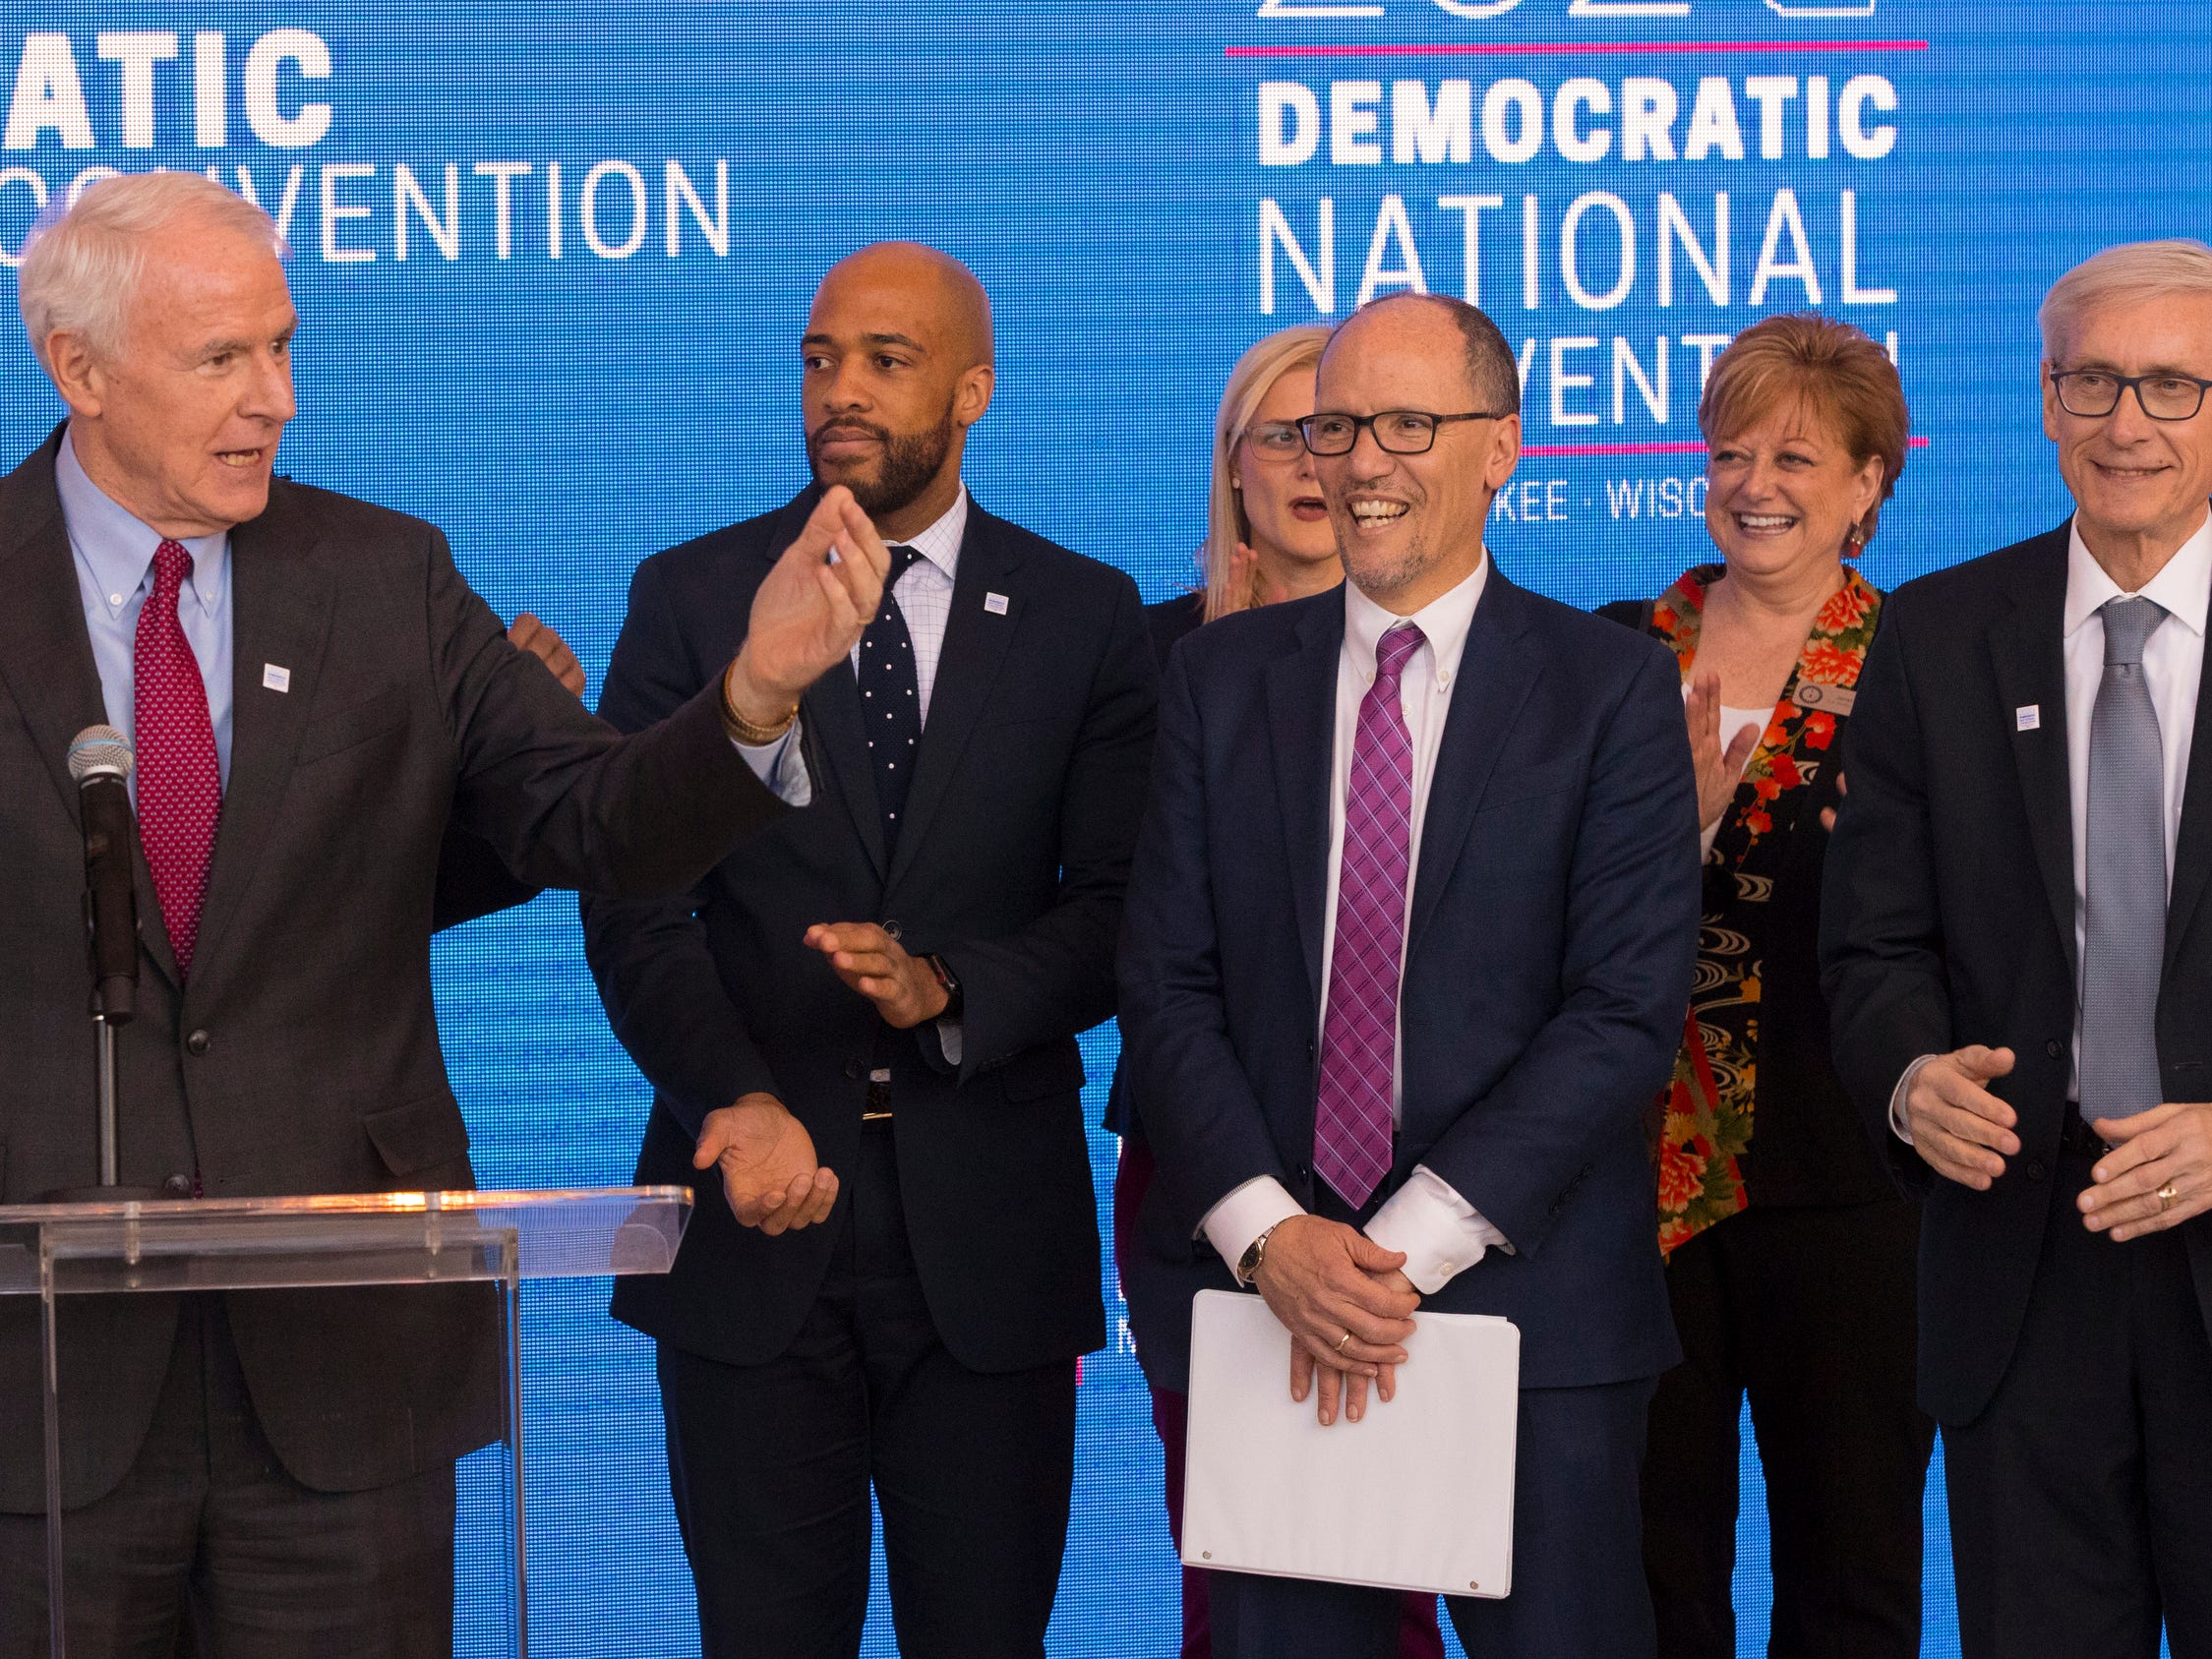 More than 4,200 people sign up to volunteer for 2020 DNC in Milwaukee